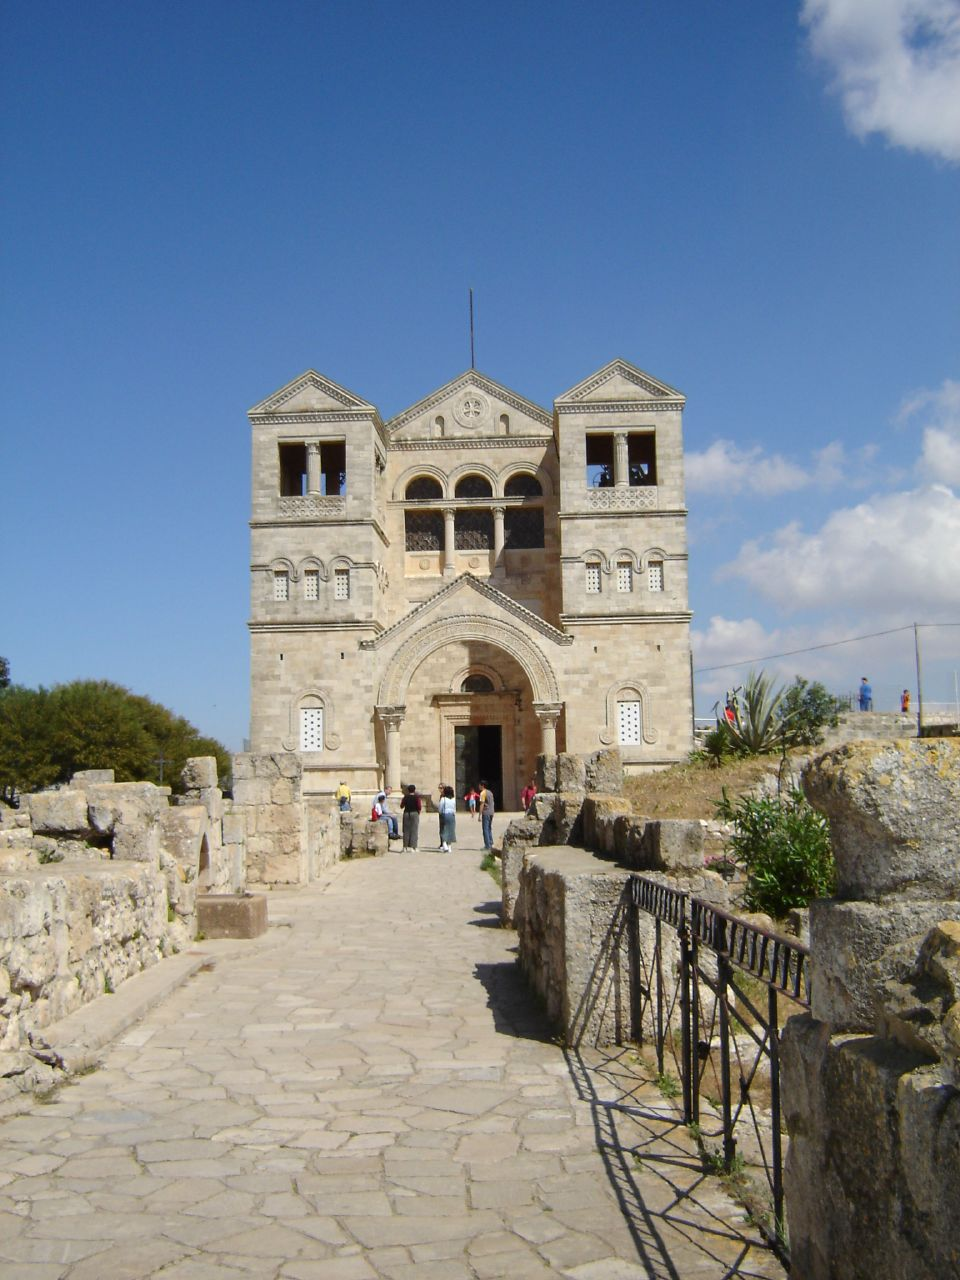 Mt. Tabor - جبل طابور : The Church on top of the mountain